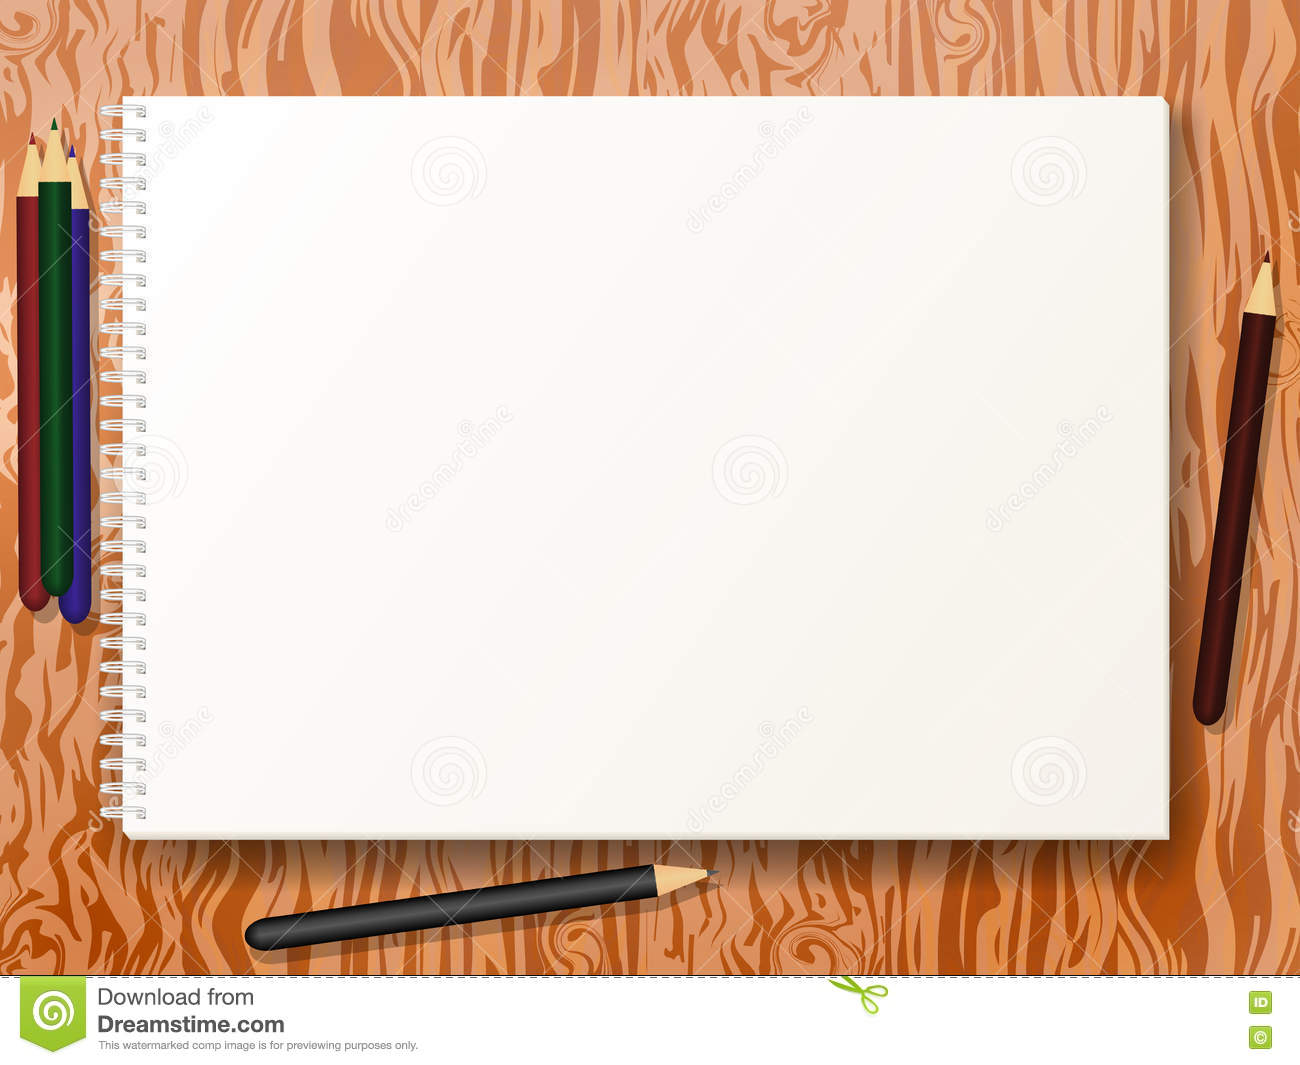 Vector Illustration Sketch Pad With Pencils Stock Vector - Illustration Of Sheet Pencil 71230351